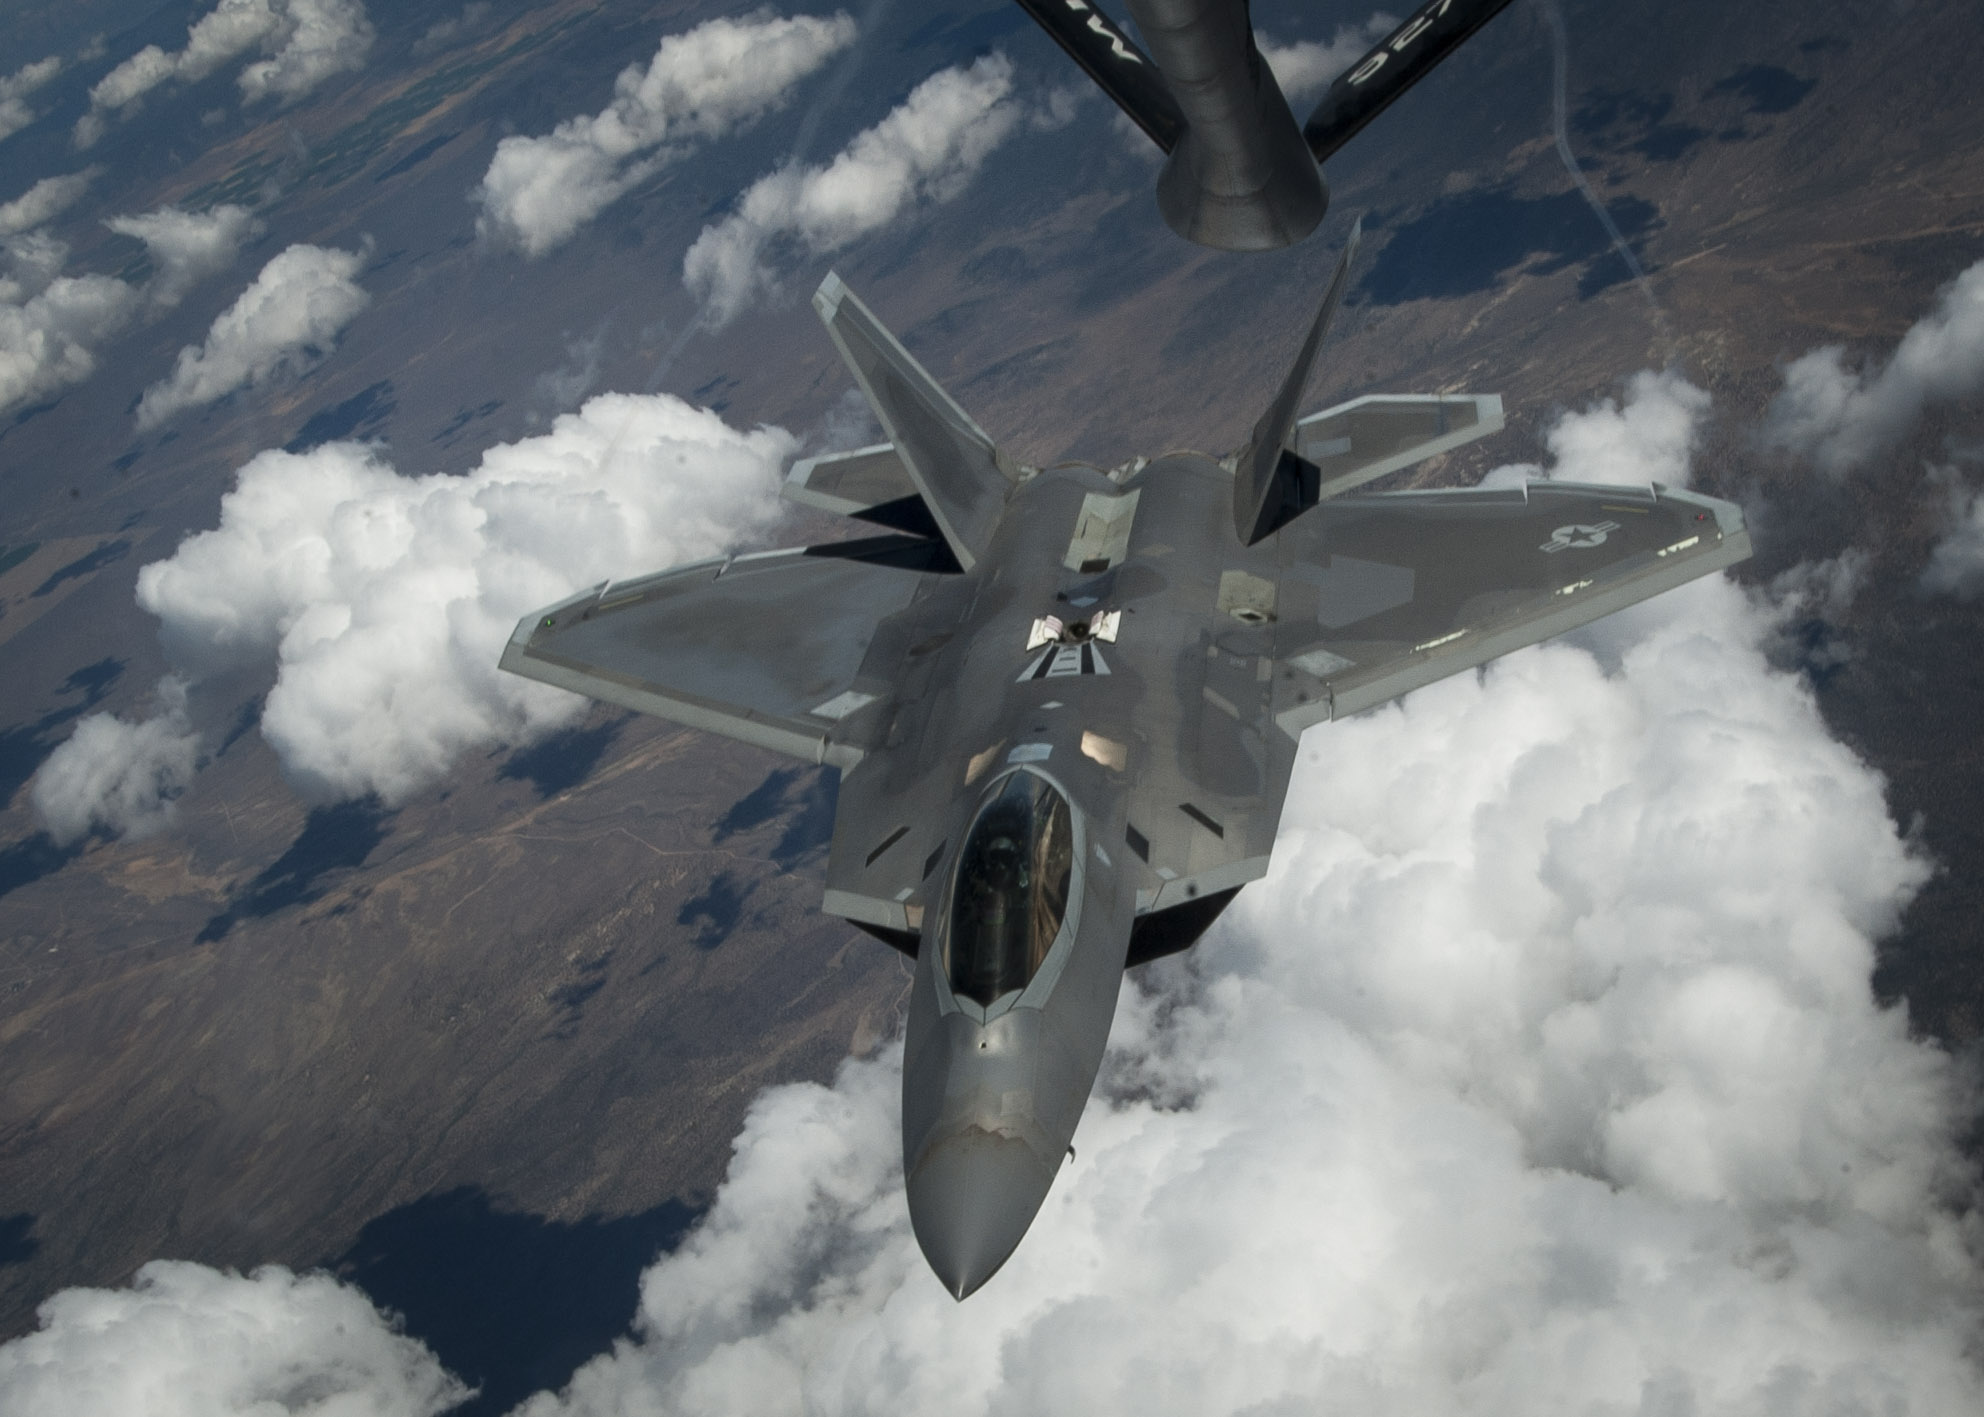 An F-22 Raptor banks off after receiving fuel from a KC-135 Stratotanker over the Nevada Test and Training Range in a training sortie during a Red Flag exercise in which units from the U.S. Air Force, Marine Corps and Navy work together to succeed in air, space and cyberspace, Nevada, July 21, 2016 | Photo courtesy of and by U.S. Air Force Senior Airman Jake Carter